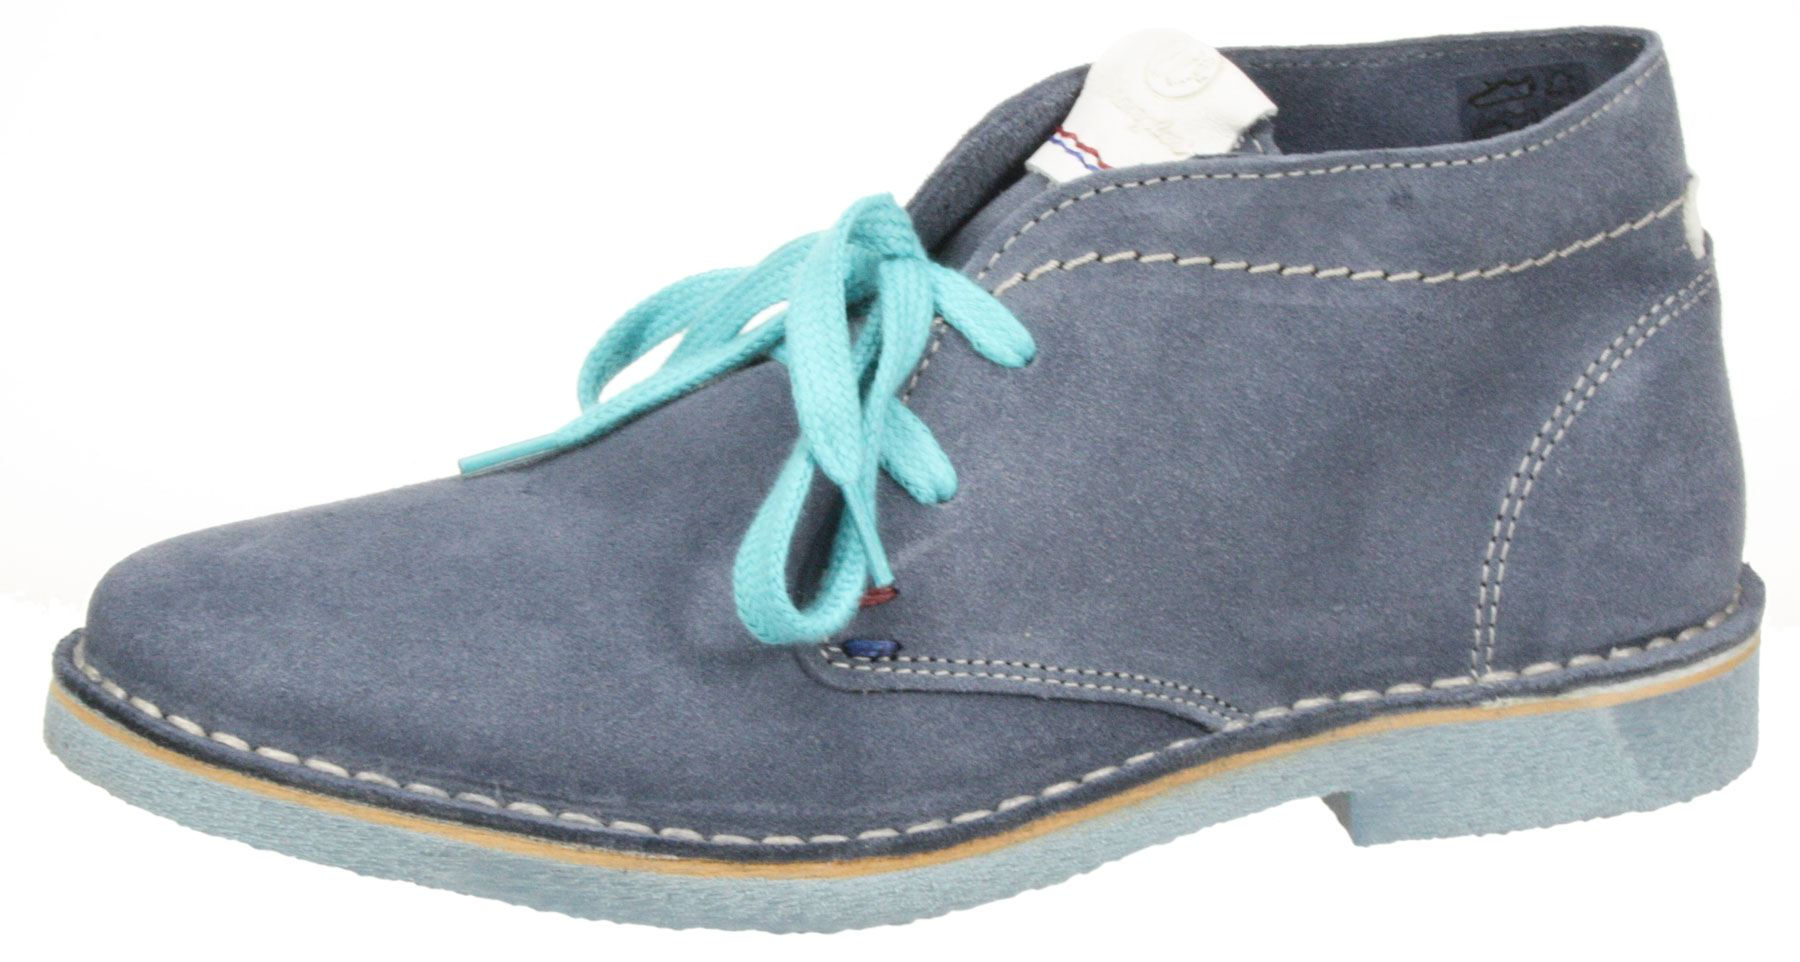 Wrangler Ladies leather suede Blue Churlish lace up desert ankle boots